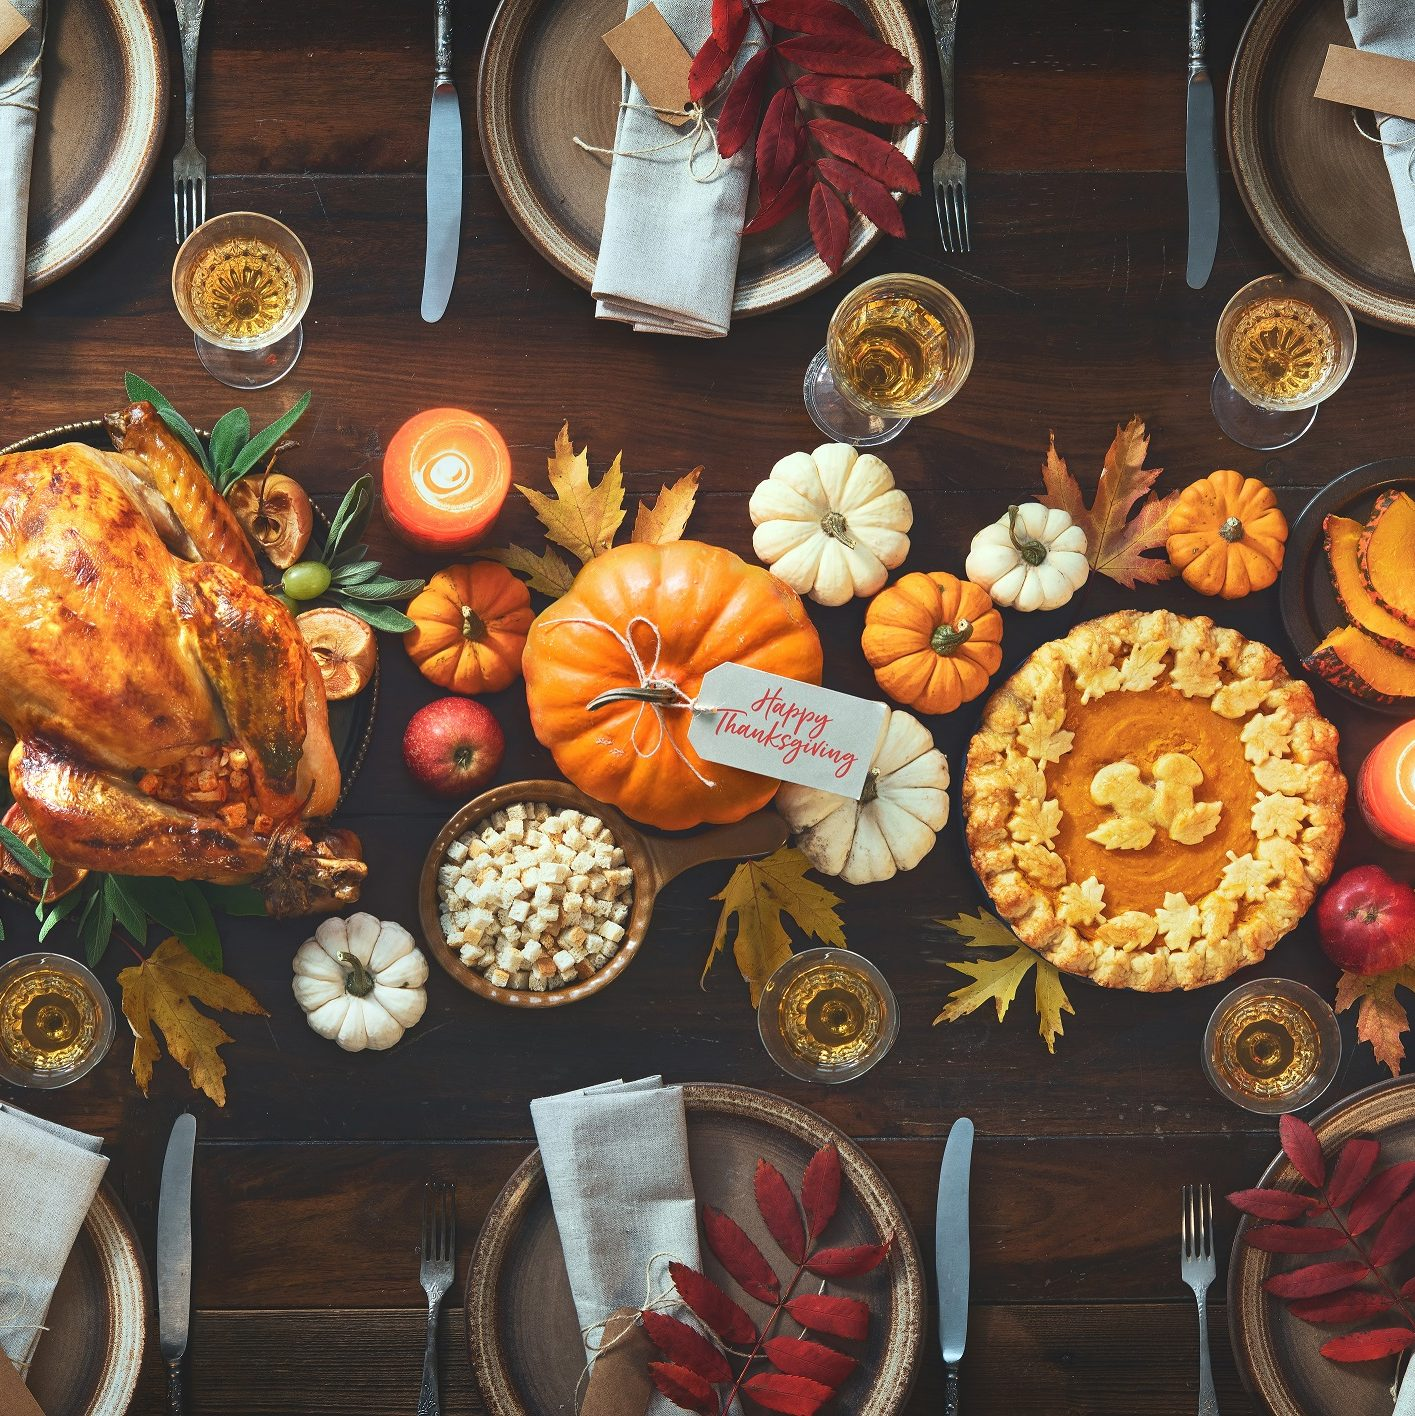 Decorated Thanksgiving table with turkey, pumpkins, leaves and napkins.